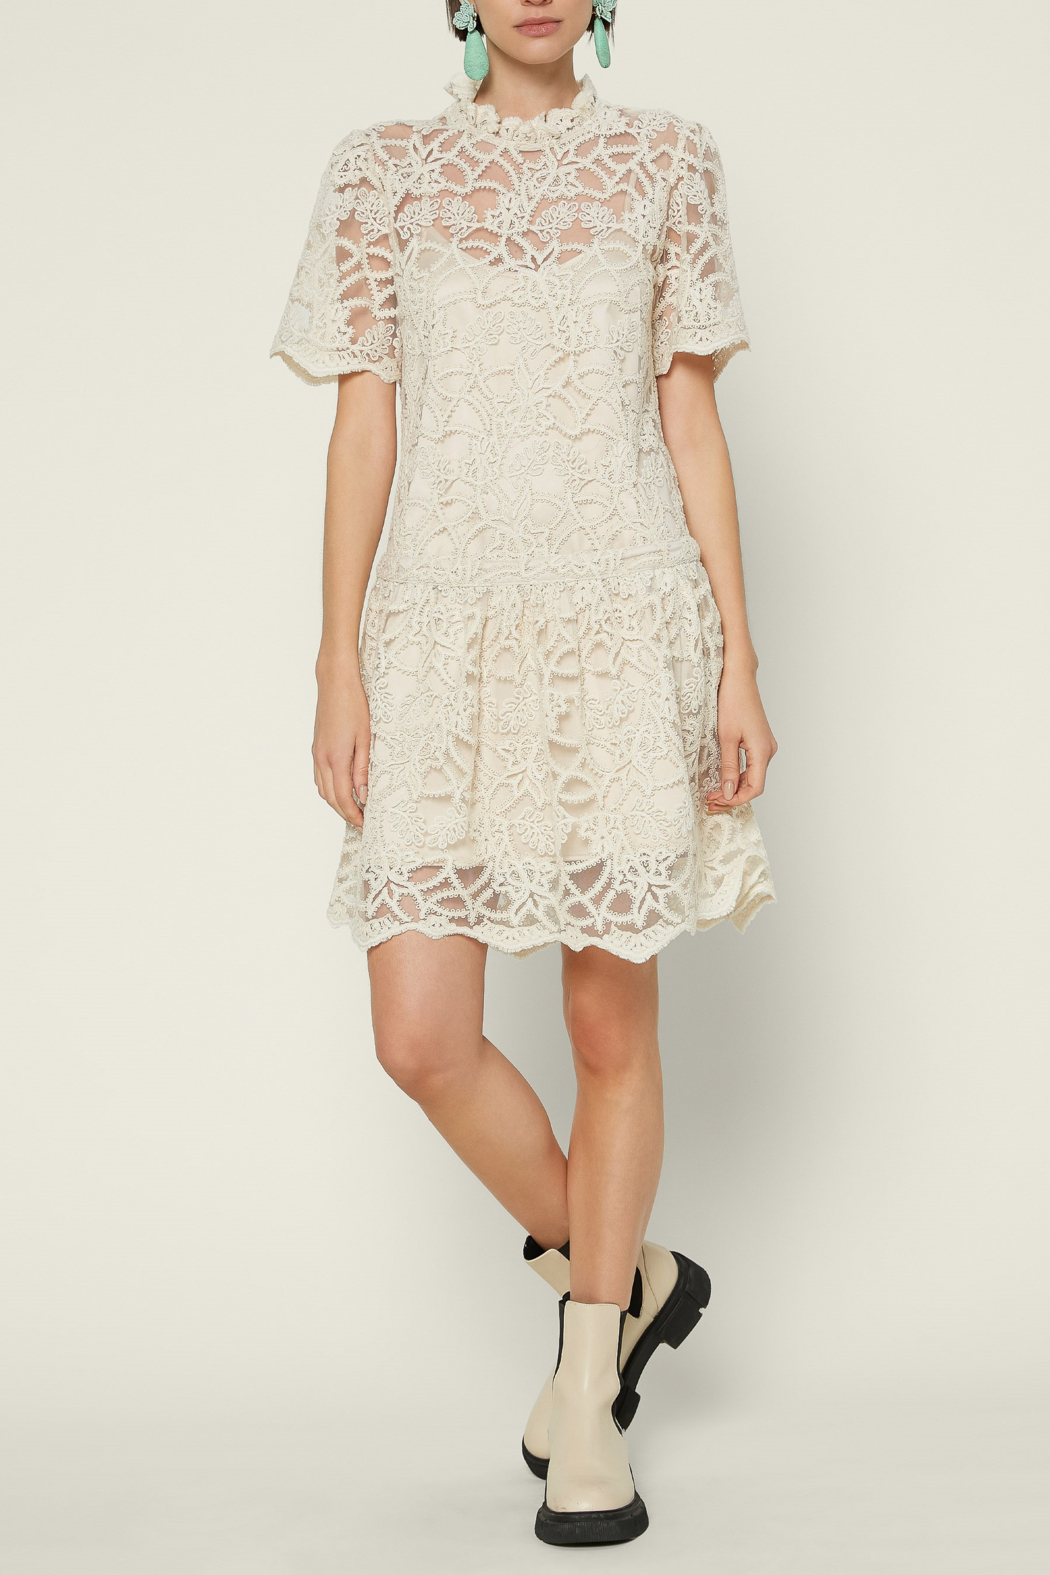 Current Air  Embellished Lace Mini Dress - Front Cropped Image